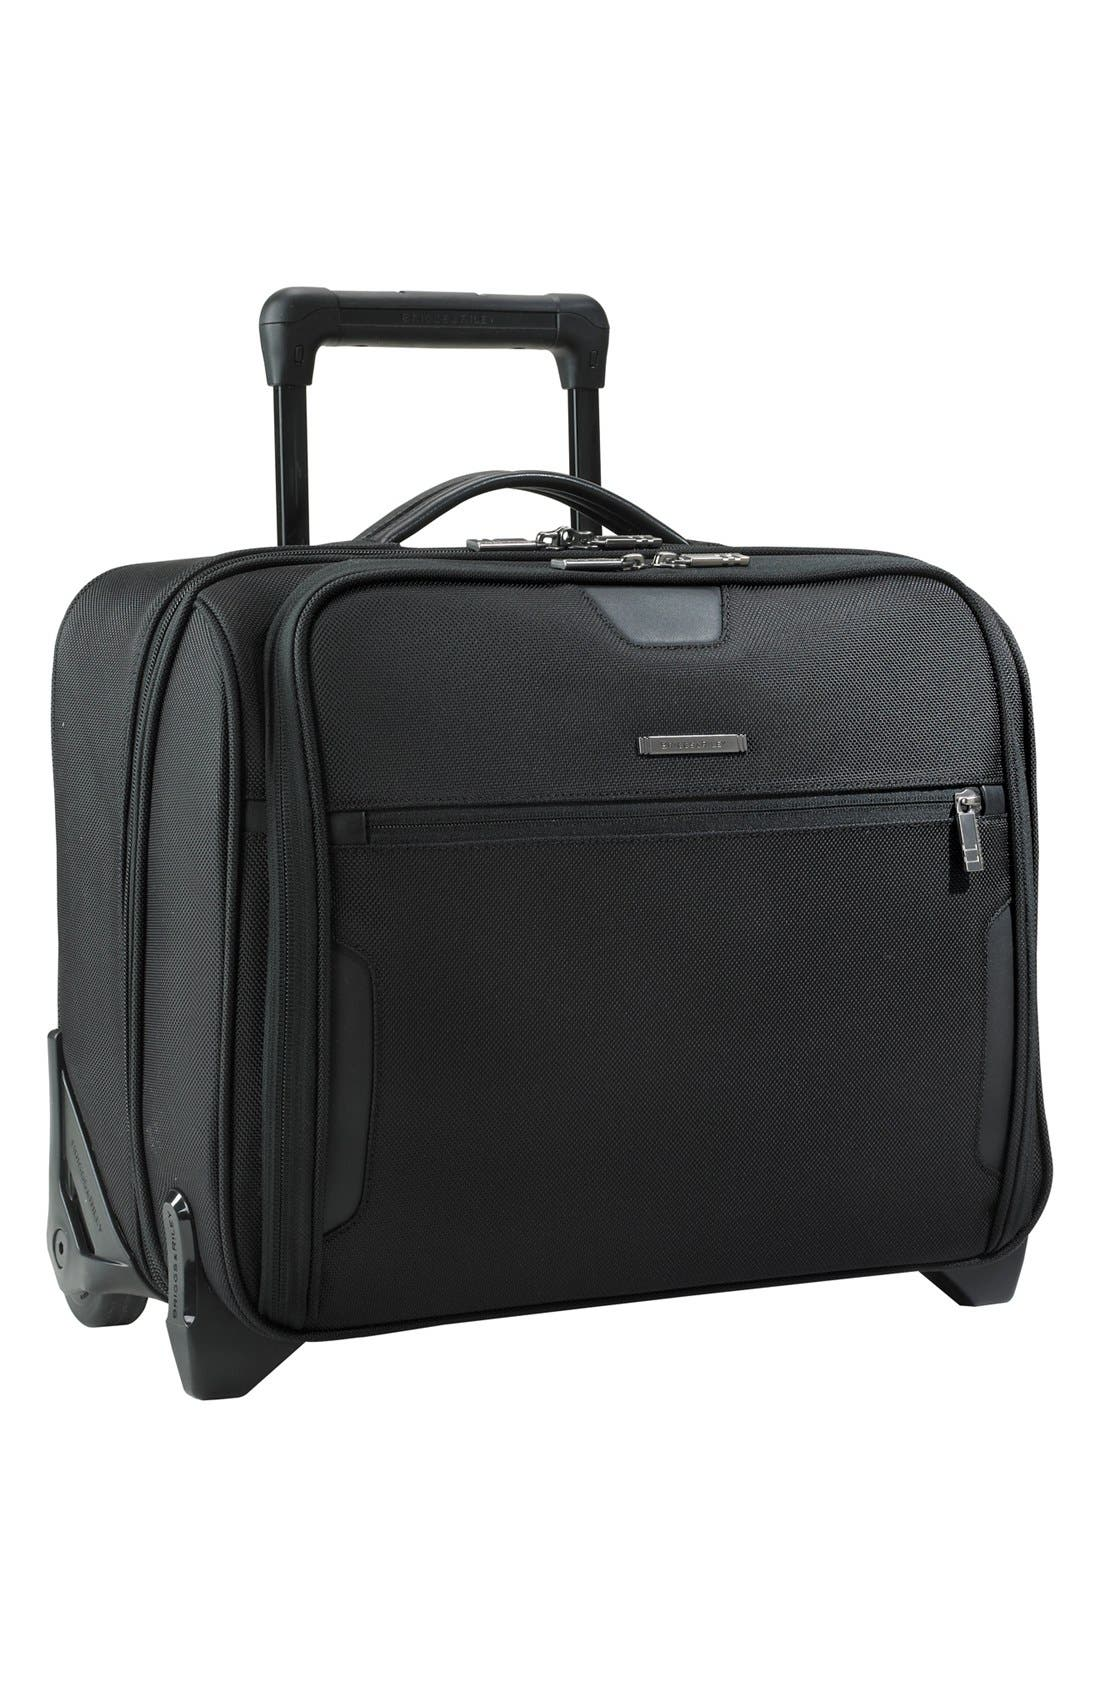 Main Image - Briggs & Riley 'Medium Slim' Rolling Ballistic Nylon Briefcase (16 Inch)